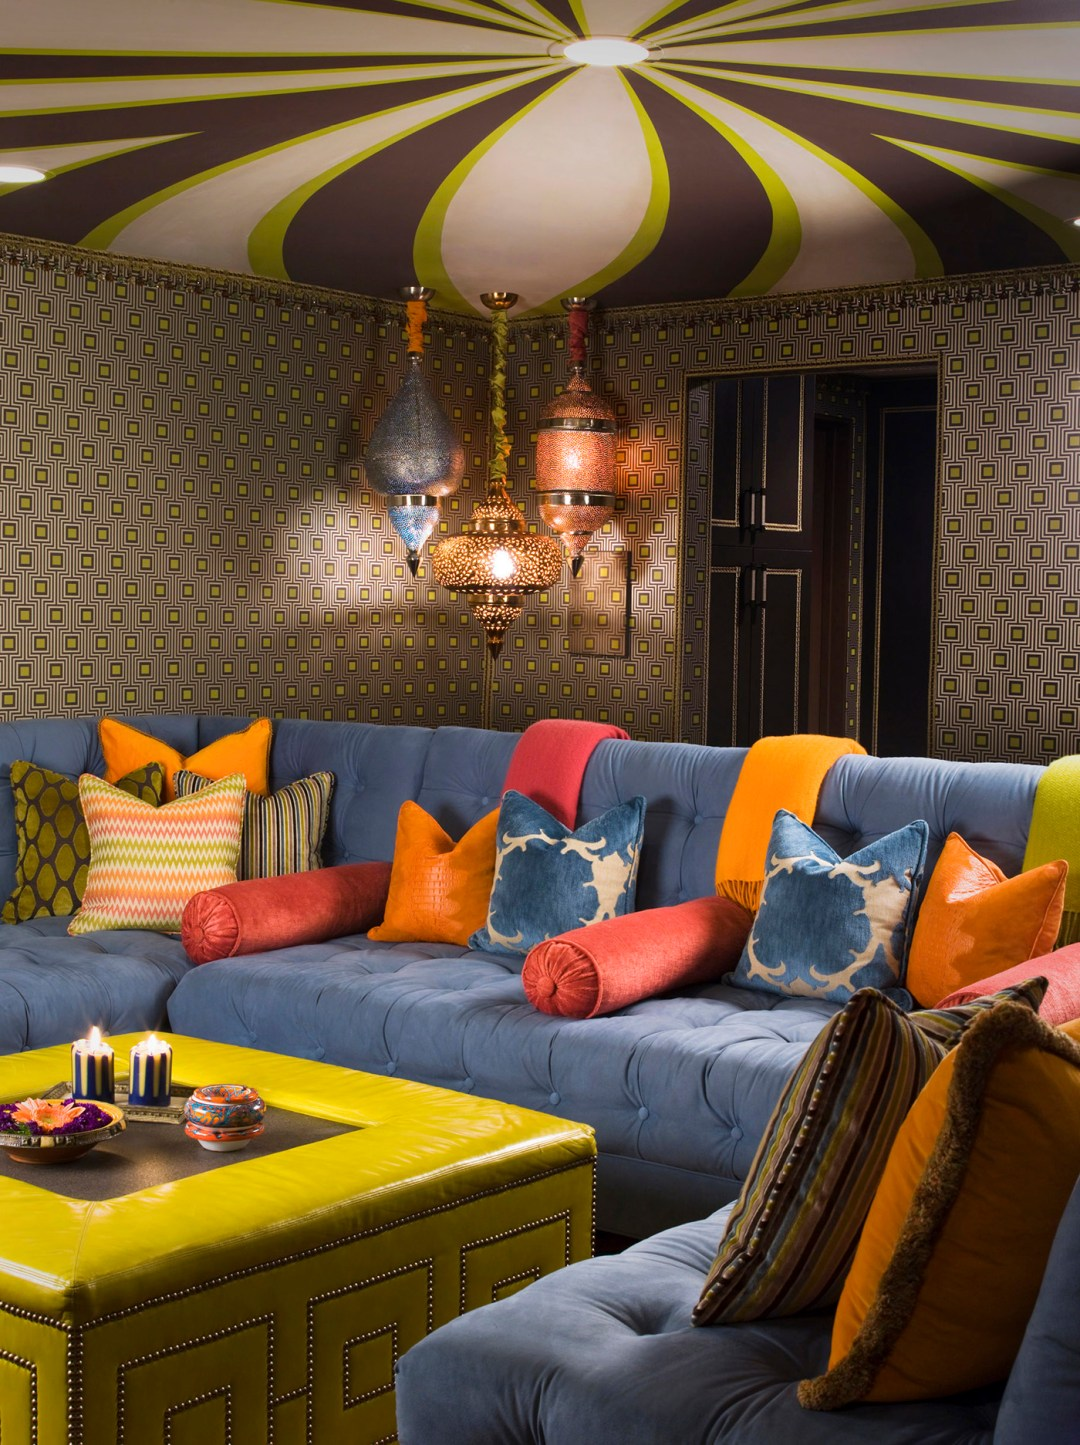 Camp in Interior design - Austin Powers Goes to Spain inspired home in Hollywood Hills